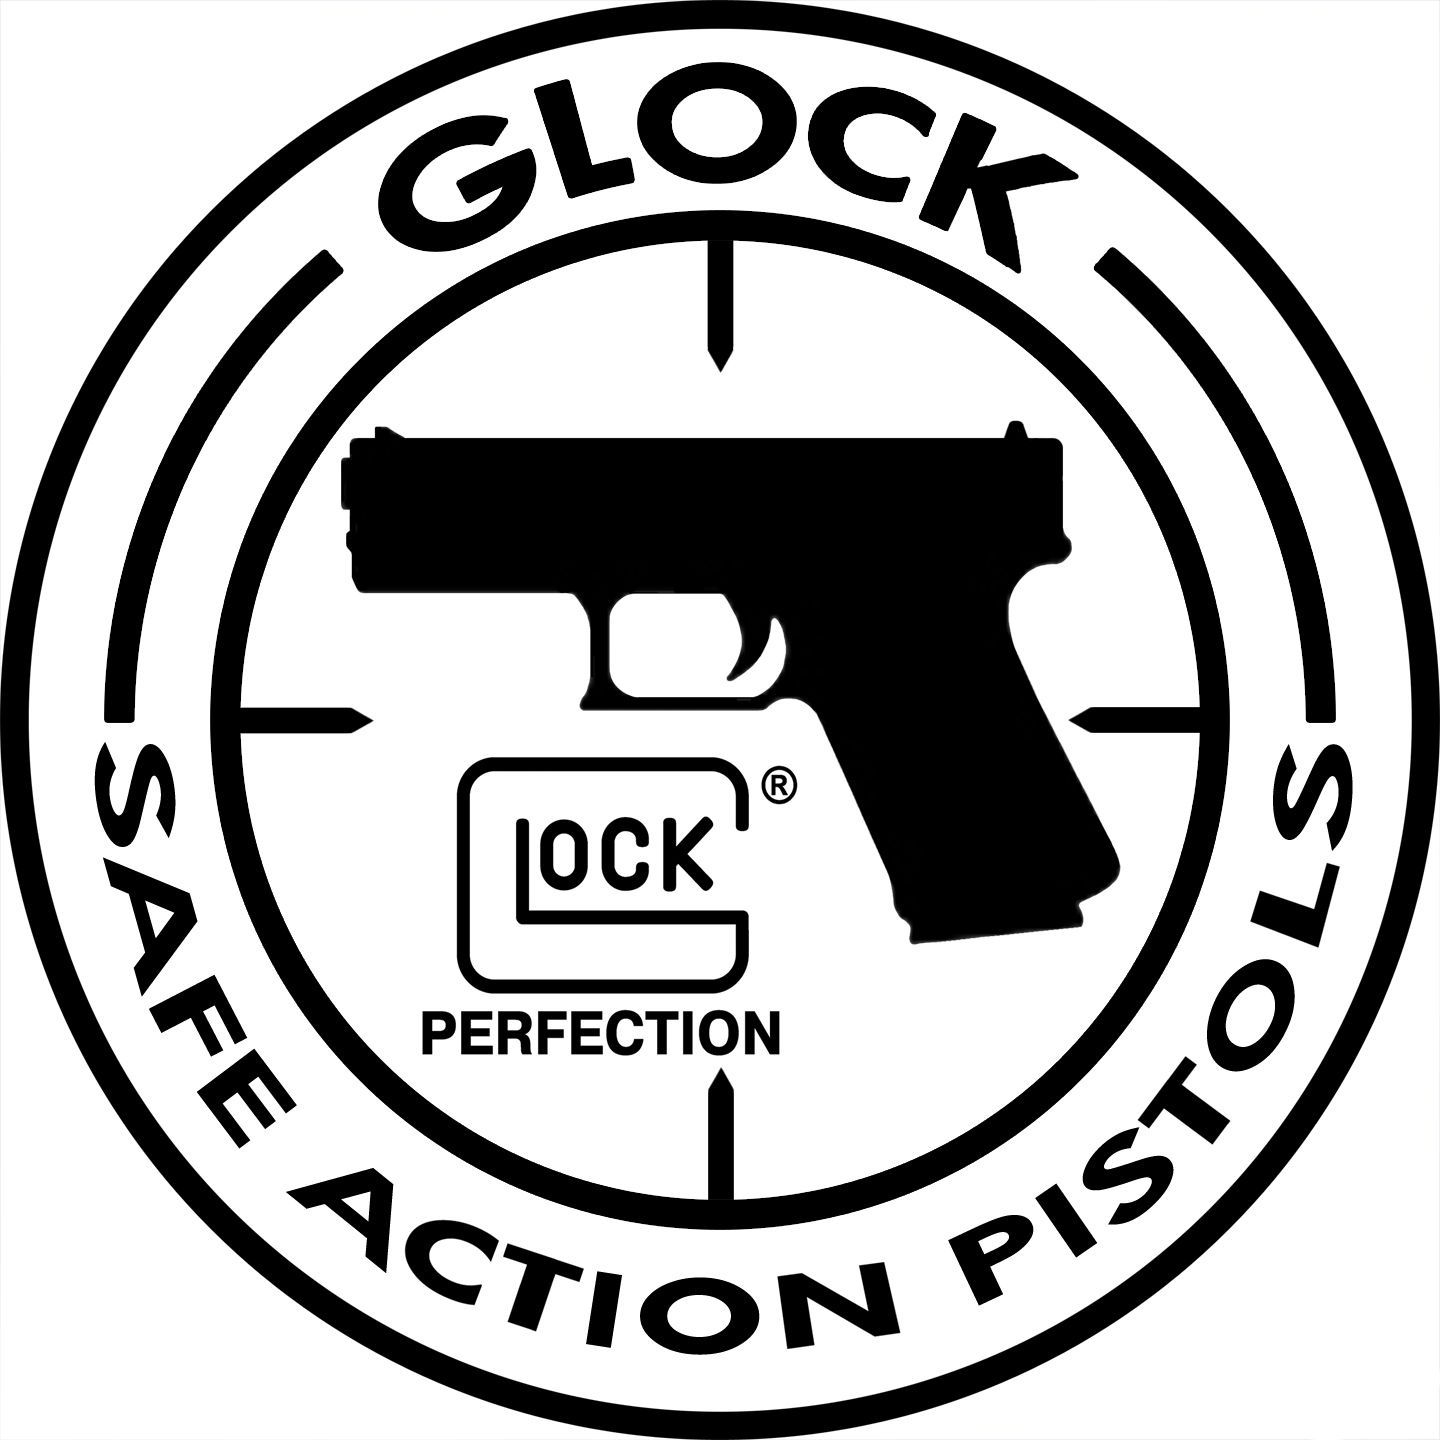 17 Best images about Firearms Brands on Pinterest   Logos, EDC and ...